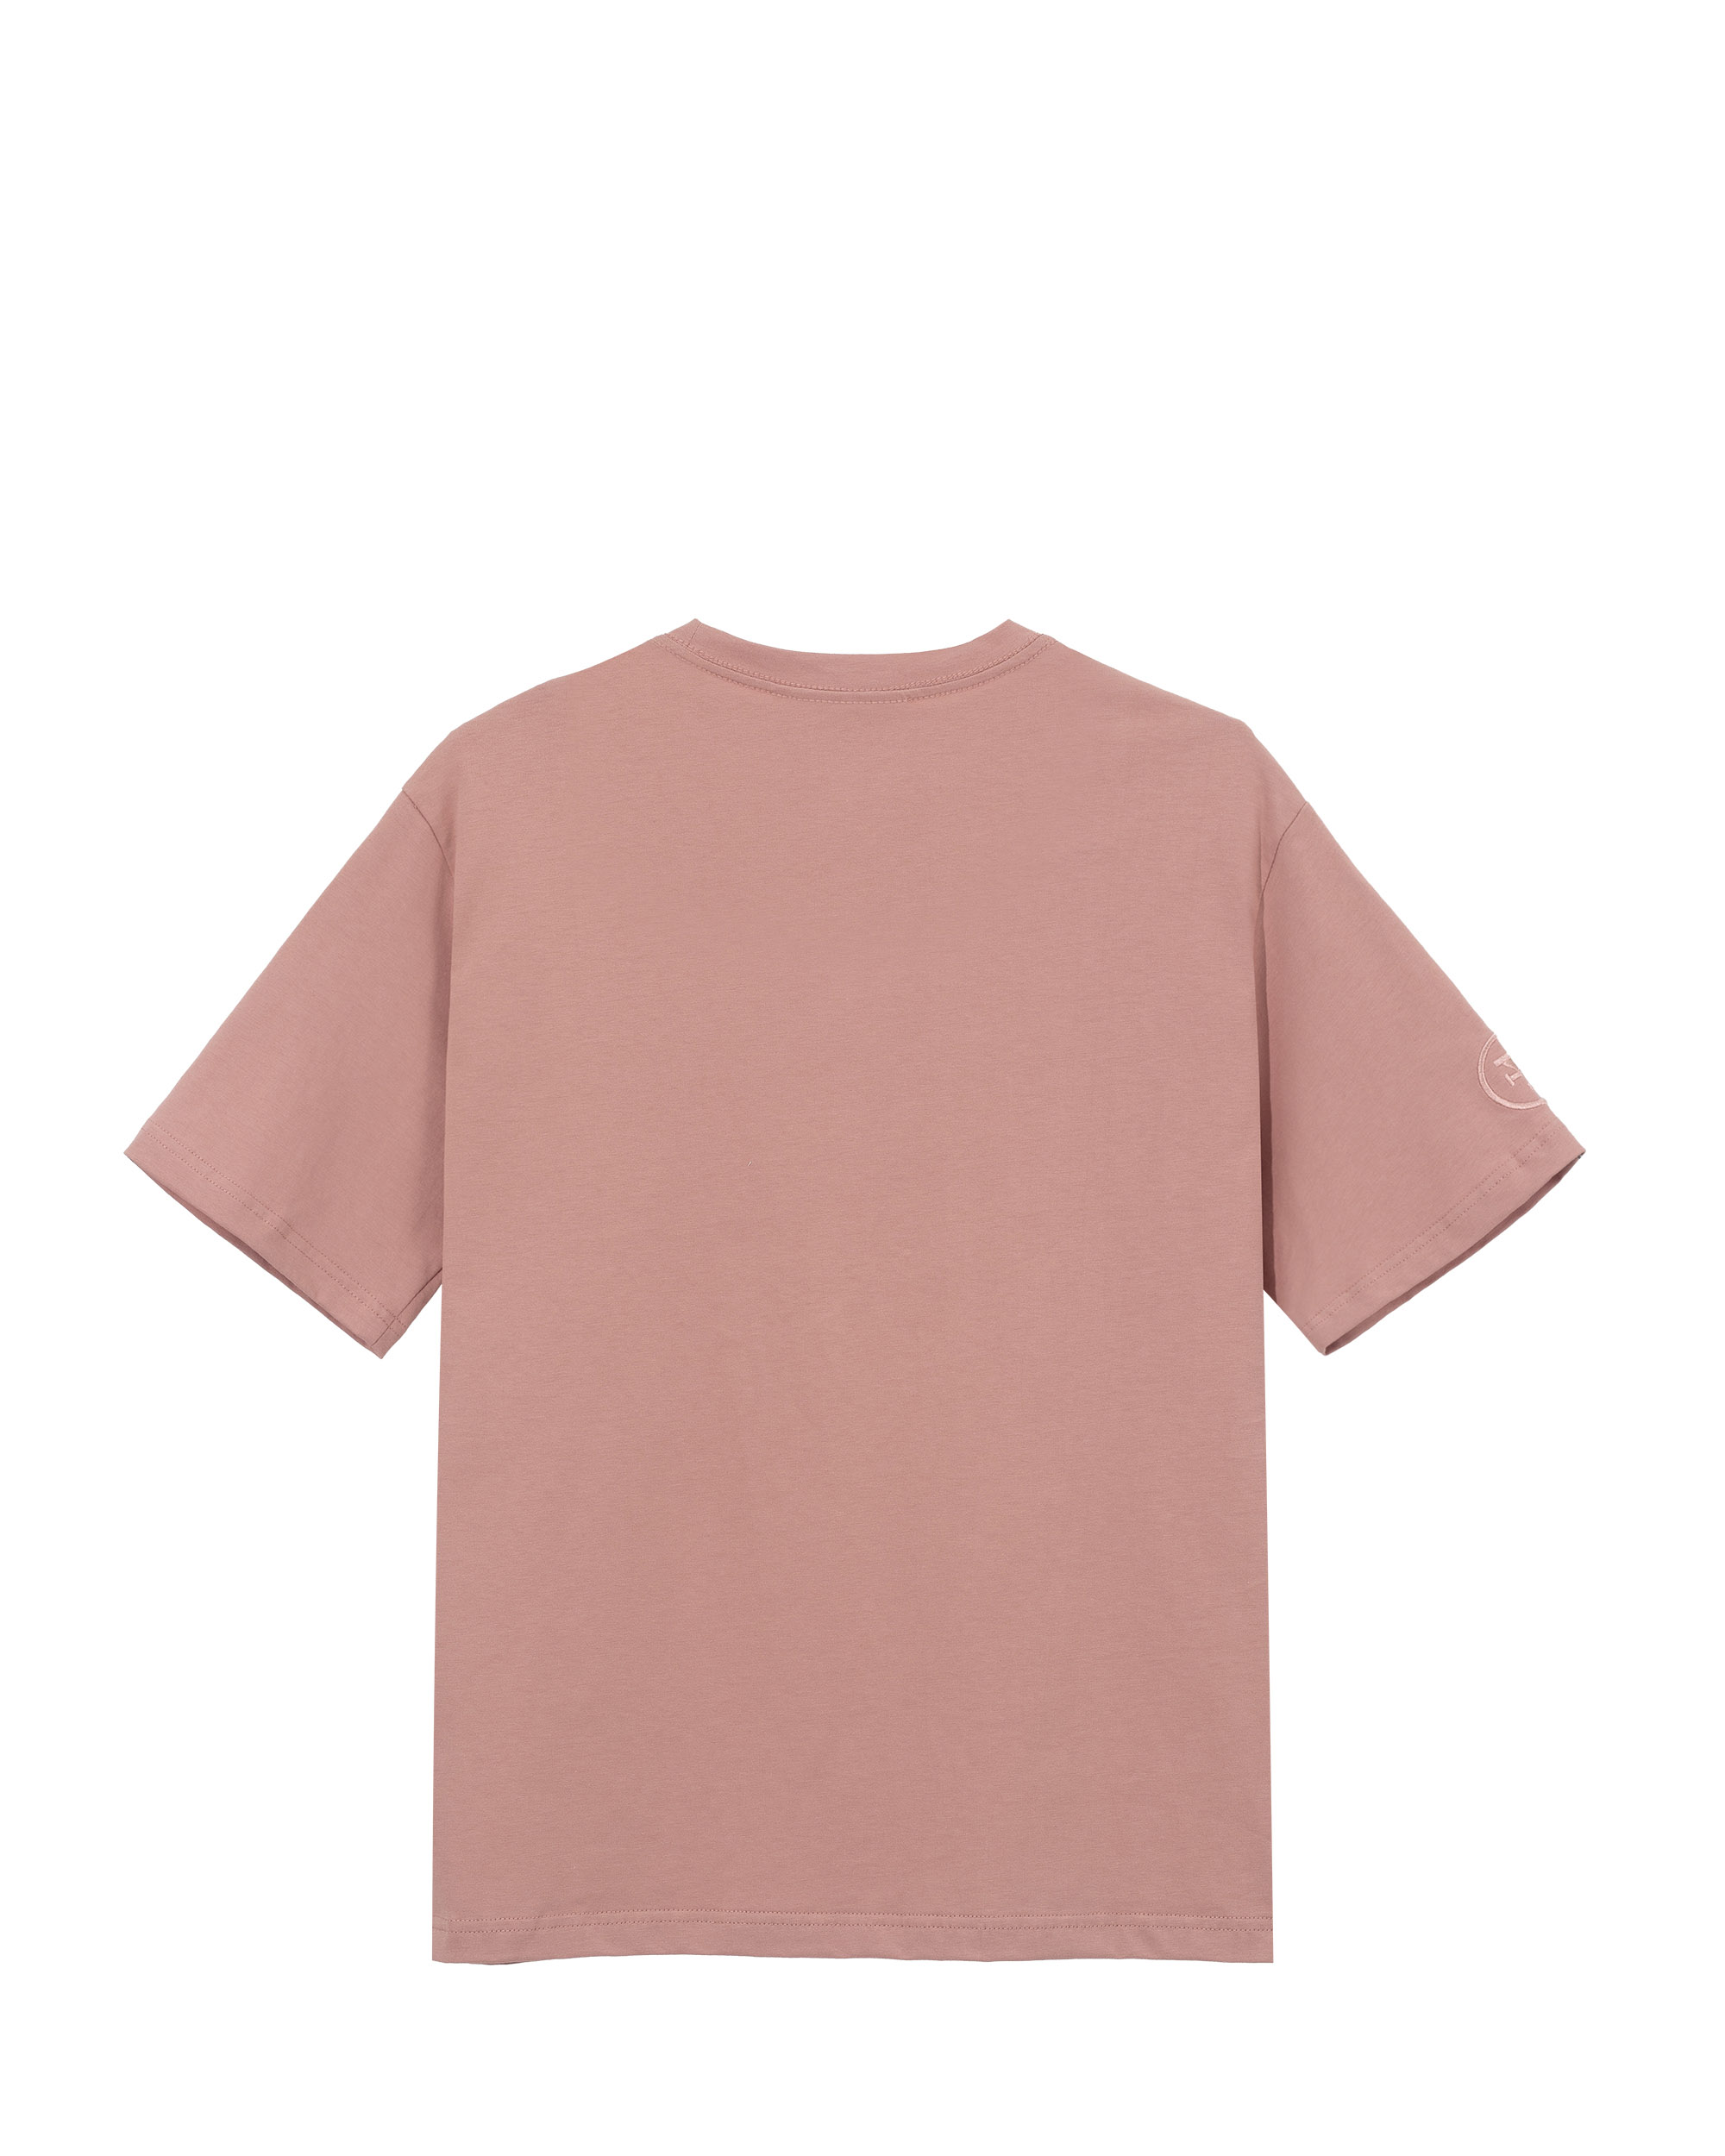 DirtyCoins Y Basic T-Shirt  - Earth Pink